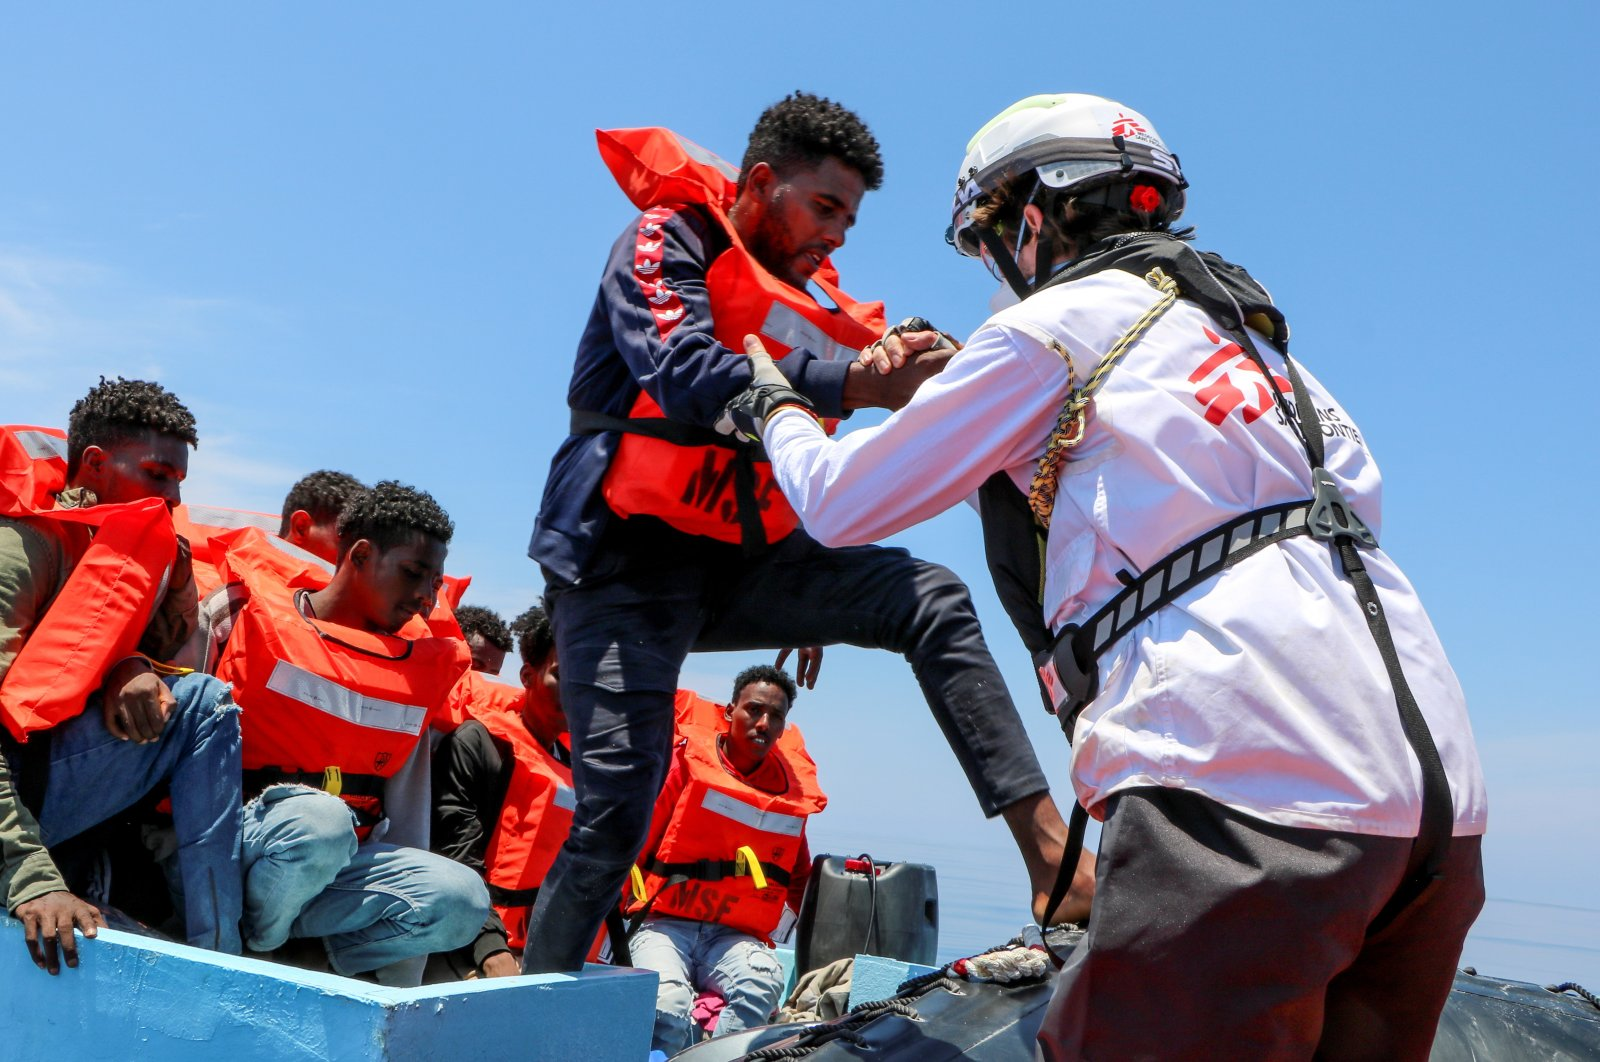 A member of the Doctors Without Borders (MSF) helps a migrant off a boat in the Mediterranean Sea, June 12, 2021. (Reuters Photo)